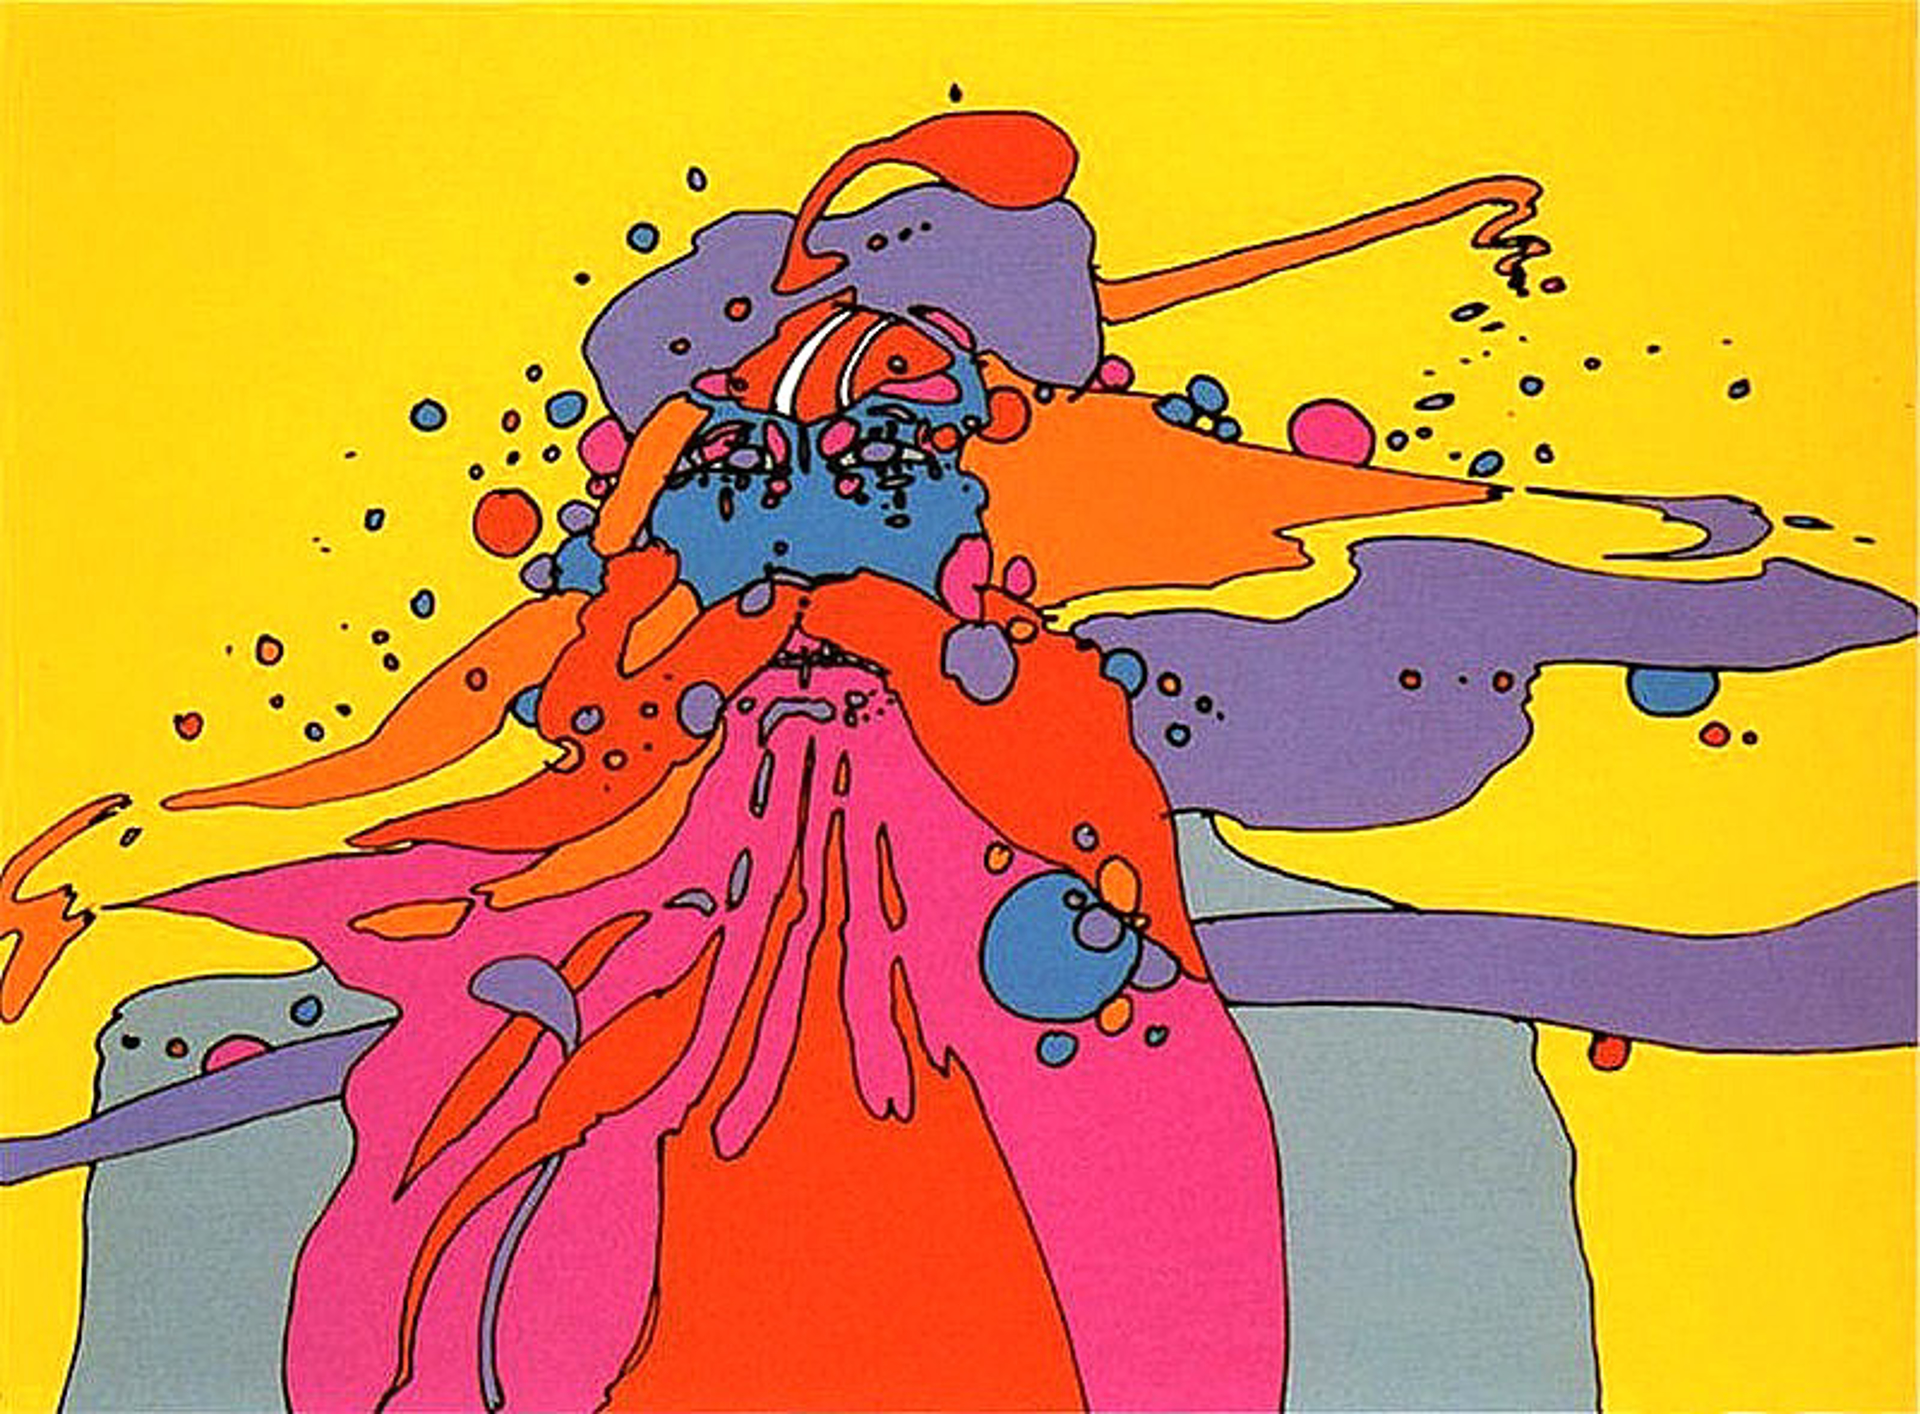 Knowledge Bliss Absolute by Peter Max